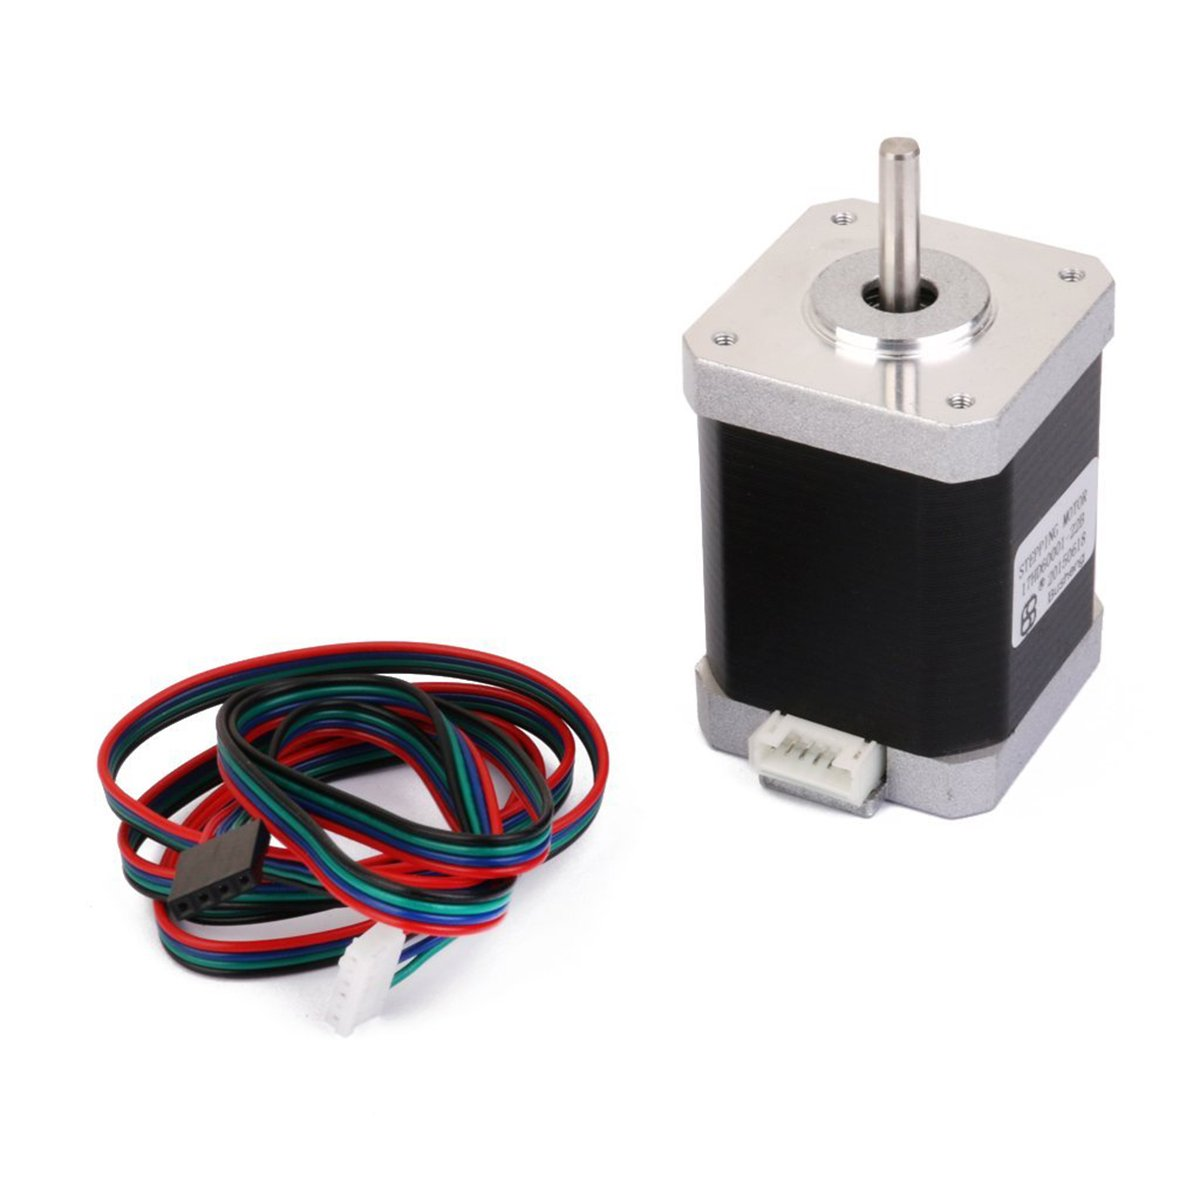 Ueetek Nema 17 Stepper Motor 2 Phase 4 Wire 15a 60mm 18for 3d Wiring Printer Business Industry Science